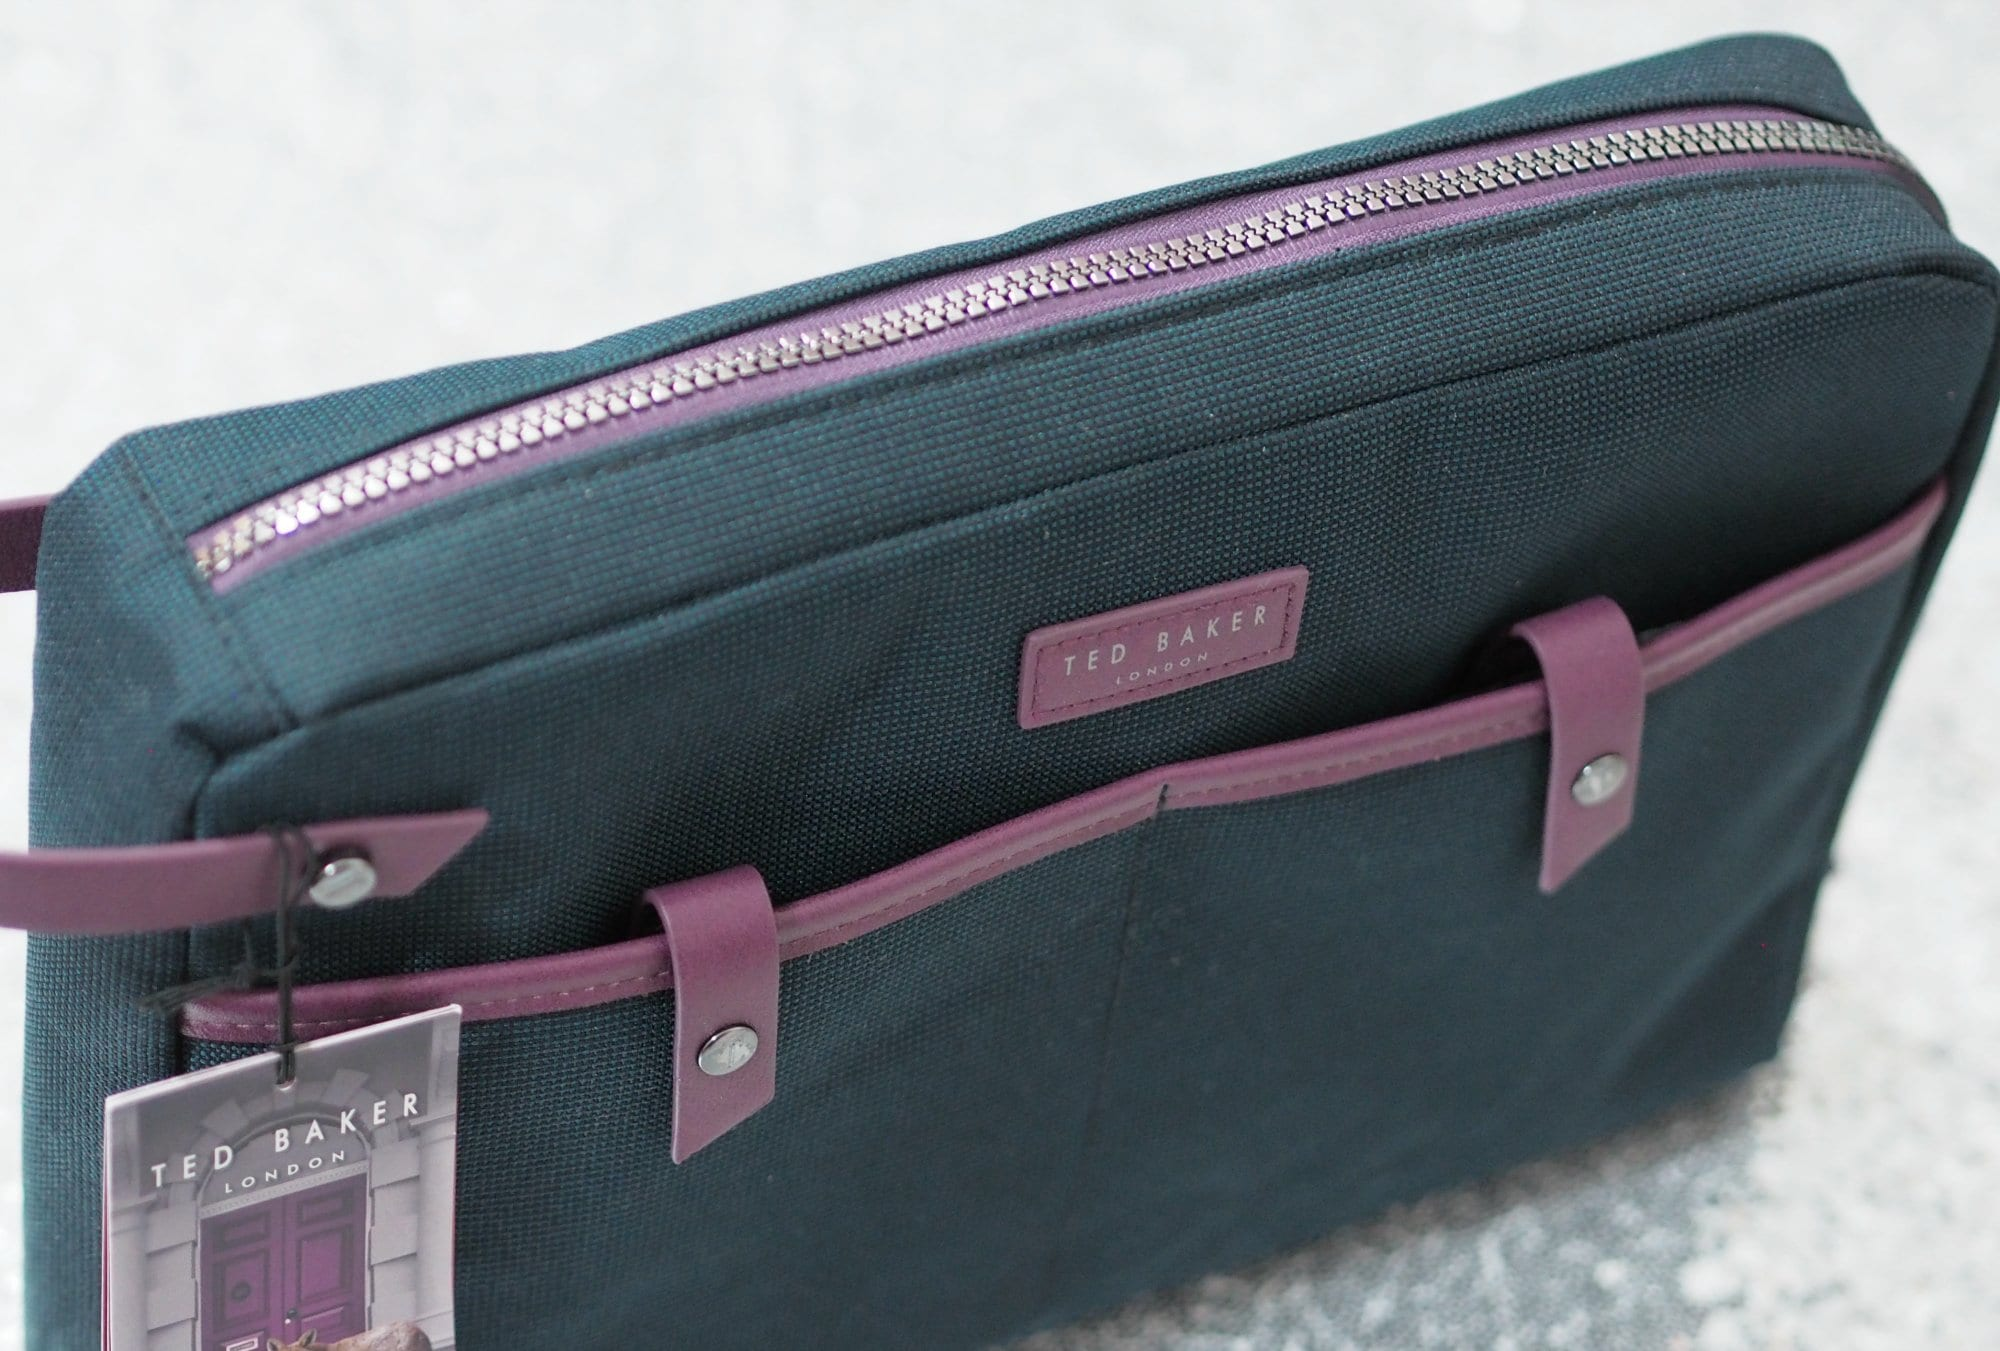 Ted Baker Travel Pouch Gift Set